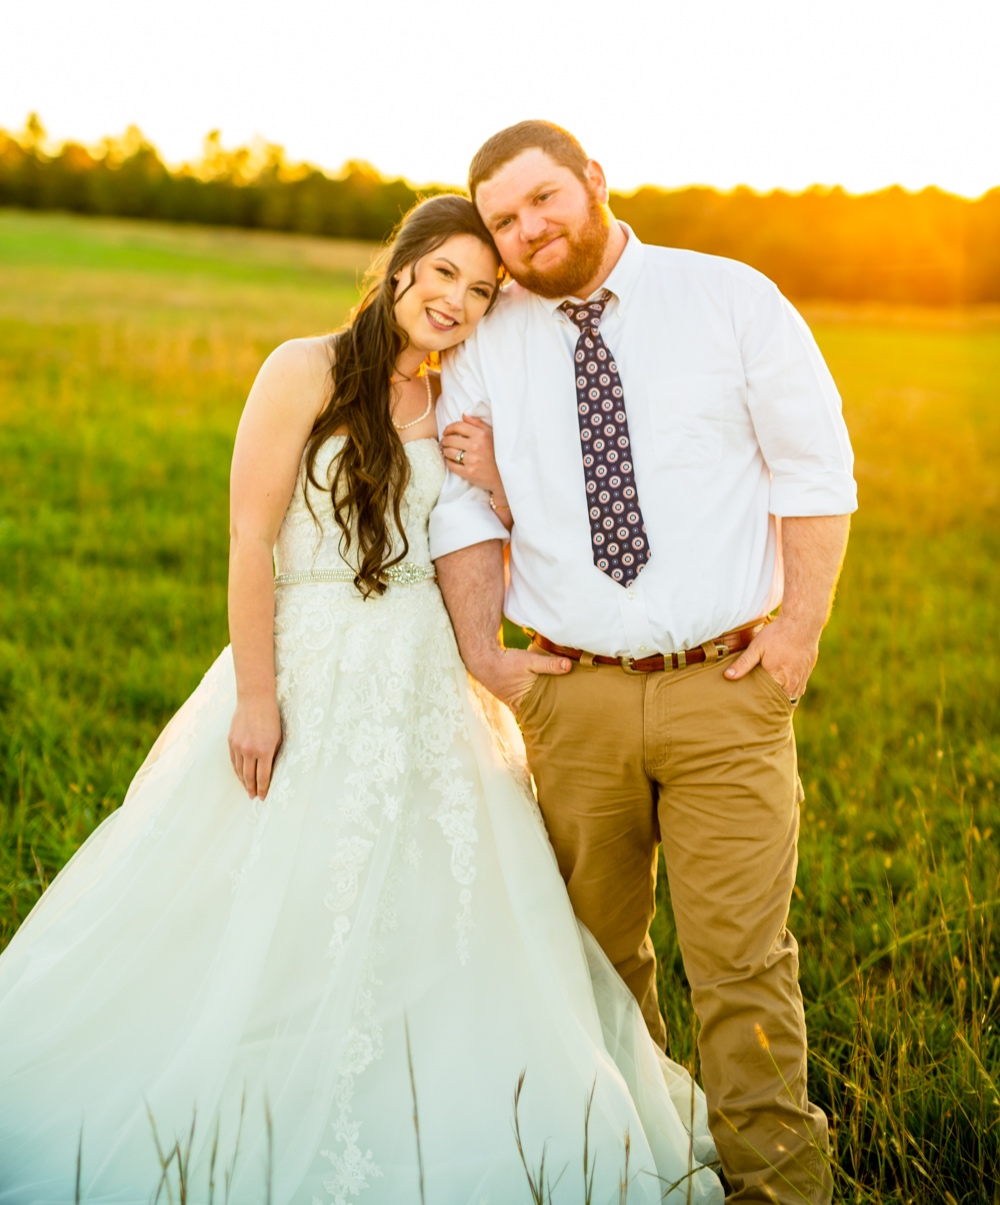 Brandon & Taylor - McDuff Photography is absolutely AMAZING! I can't recommend this duo enough! Erin and Britinni are not only kind, talented and fabulous photographers, but they made us feel comfortable in every photo we took! They work so well together and were so quick getting our photos back to us!